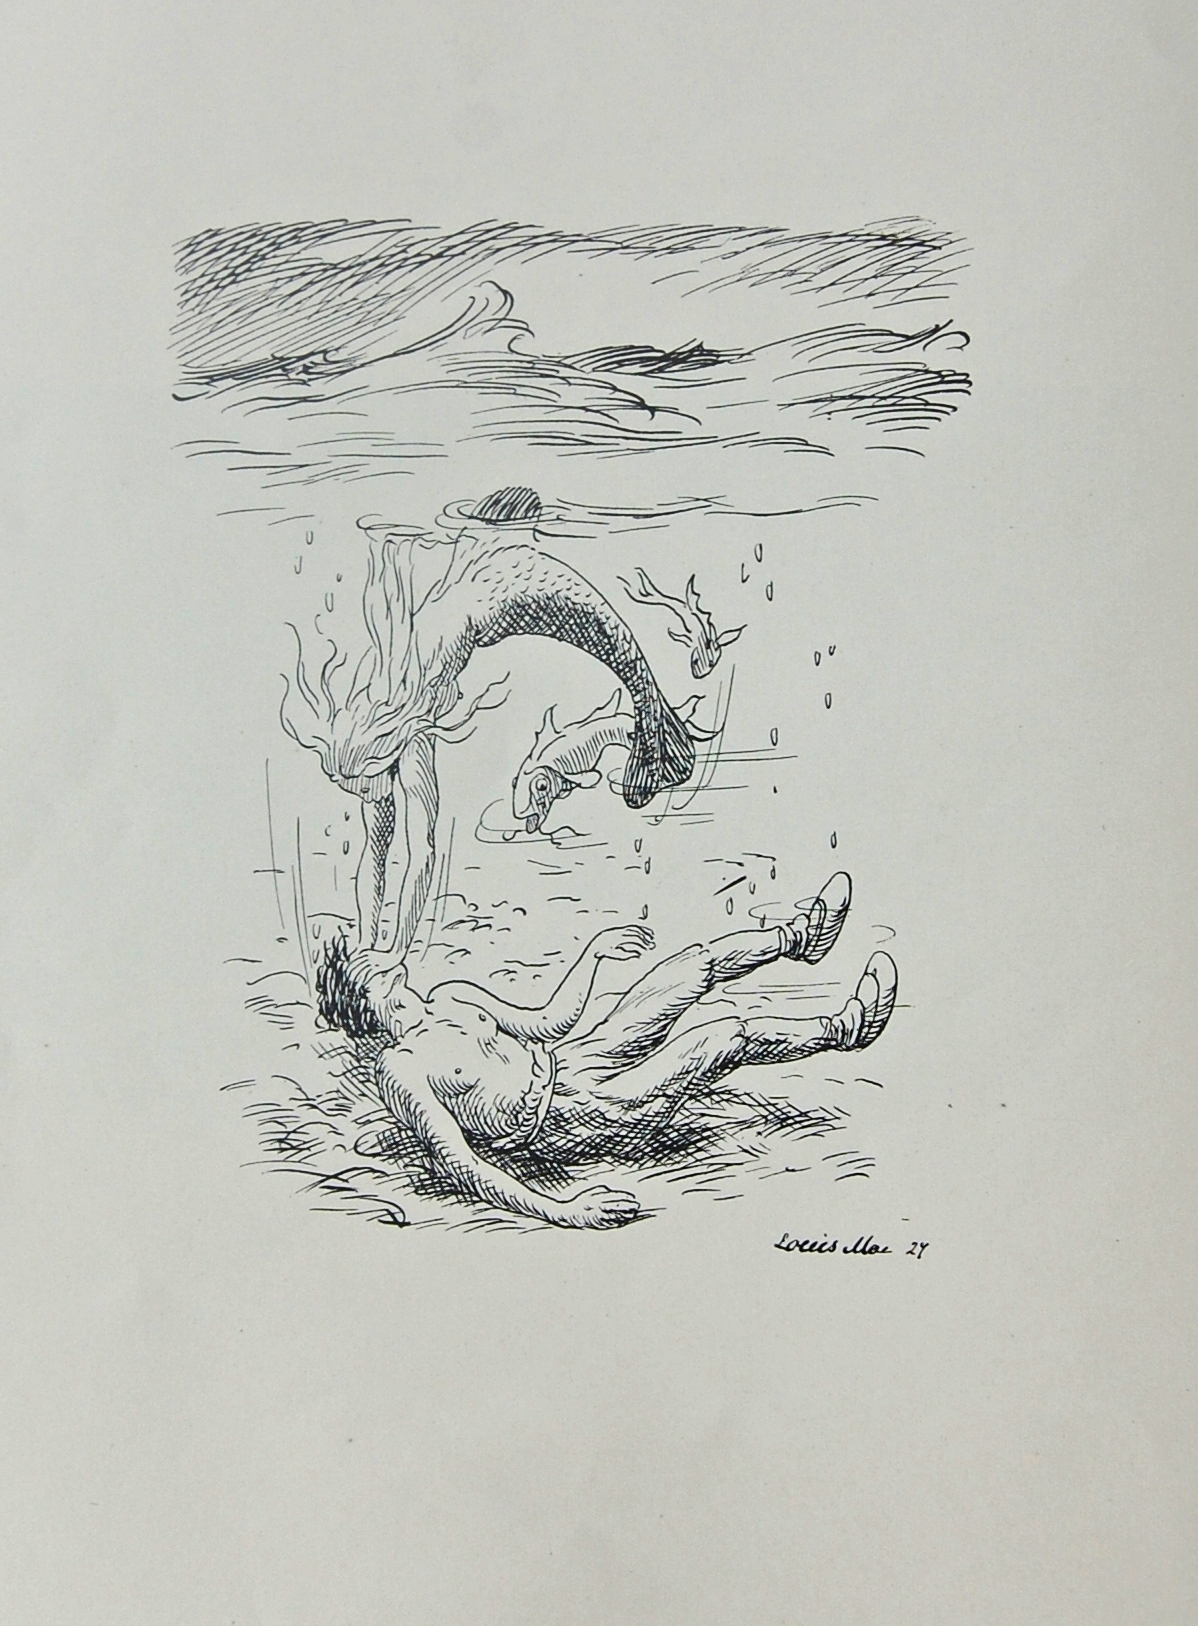 Fimbulvetr Mermaid Drowning a Man